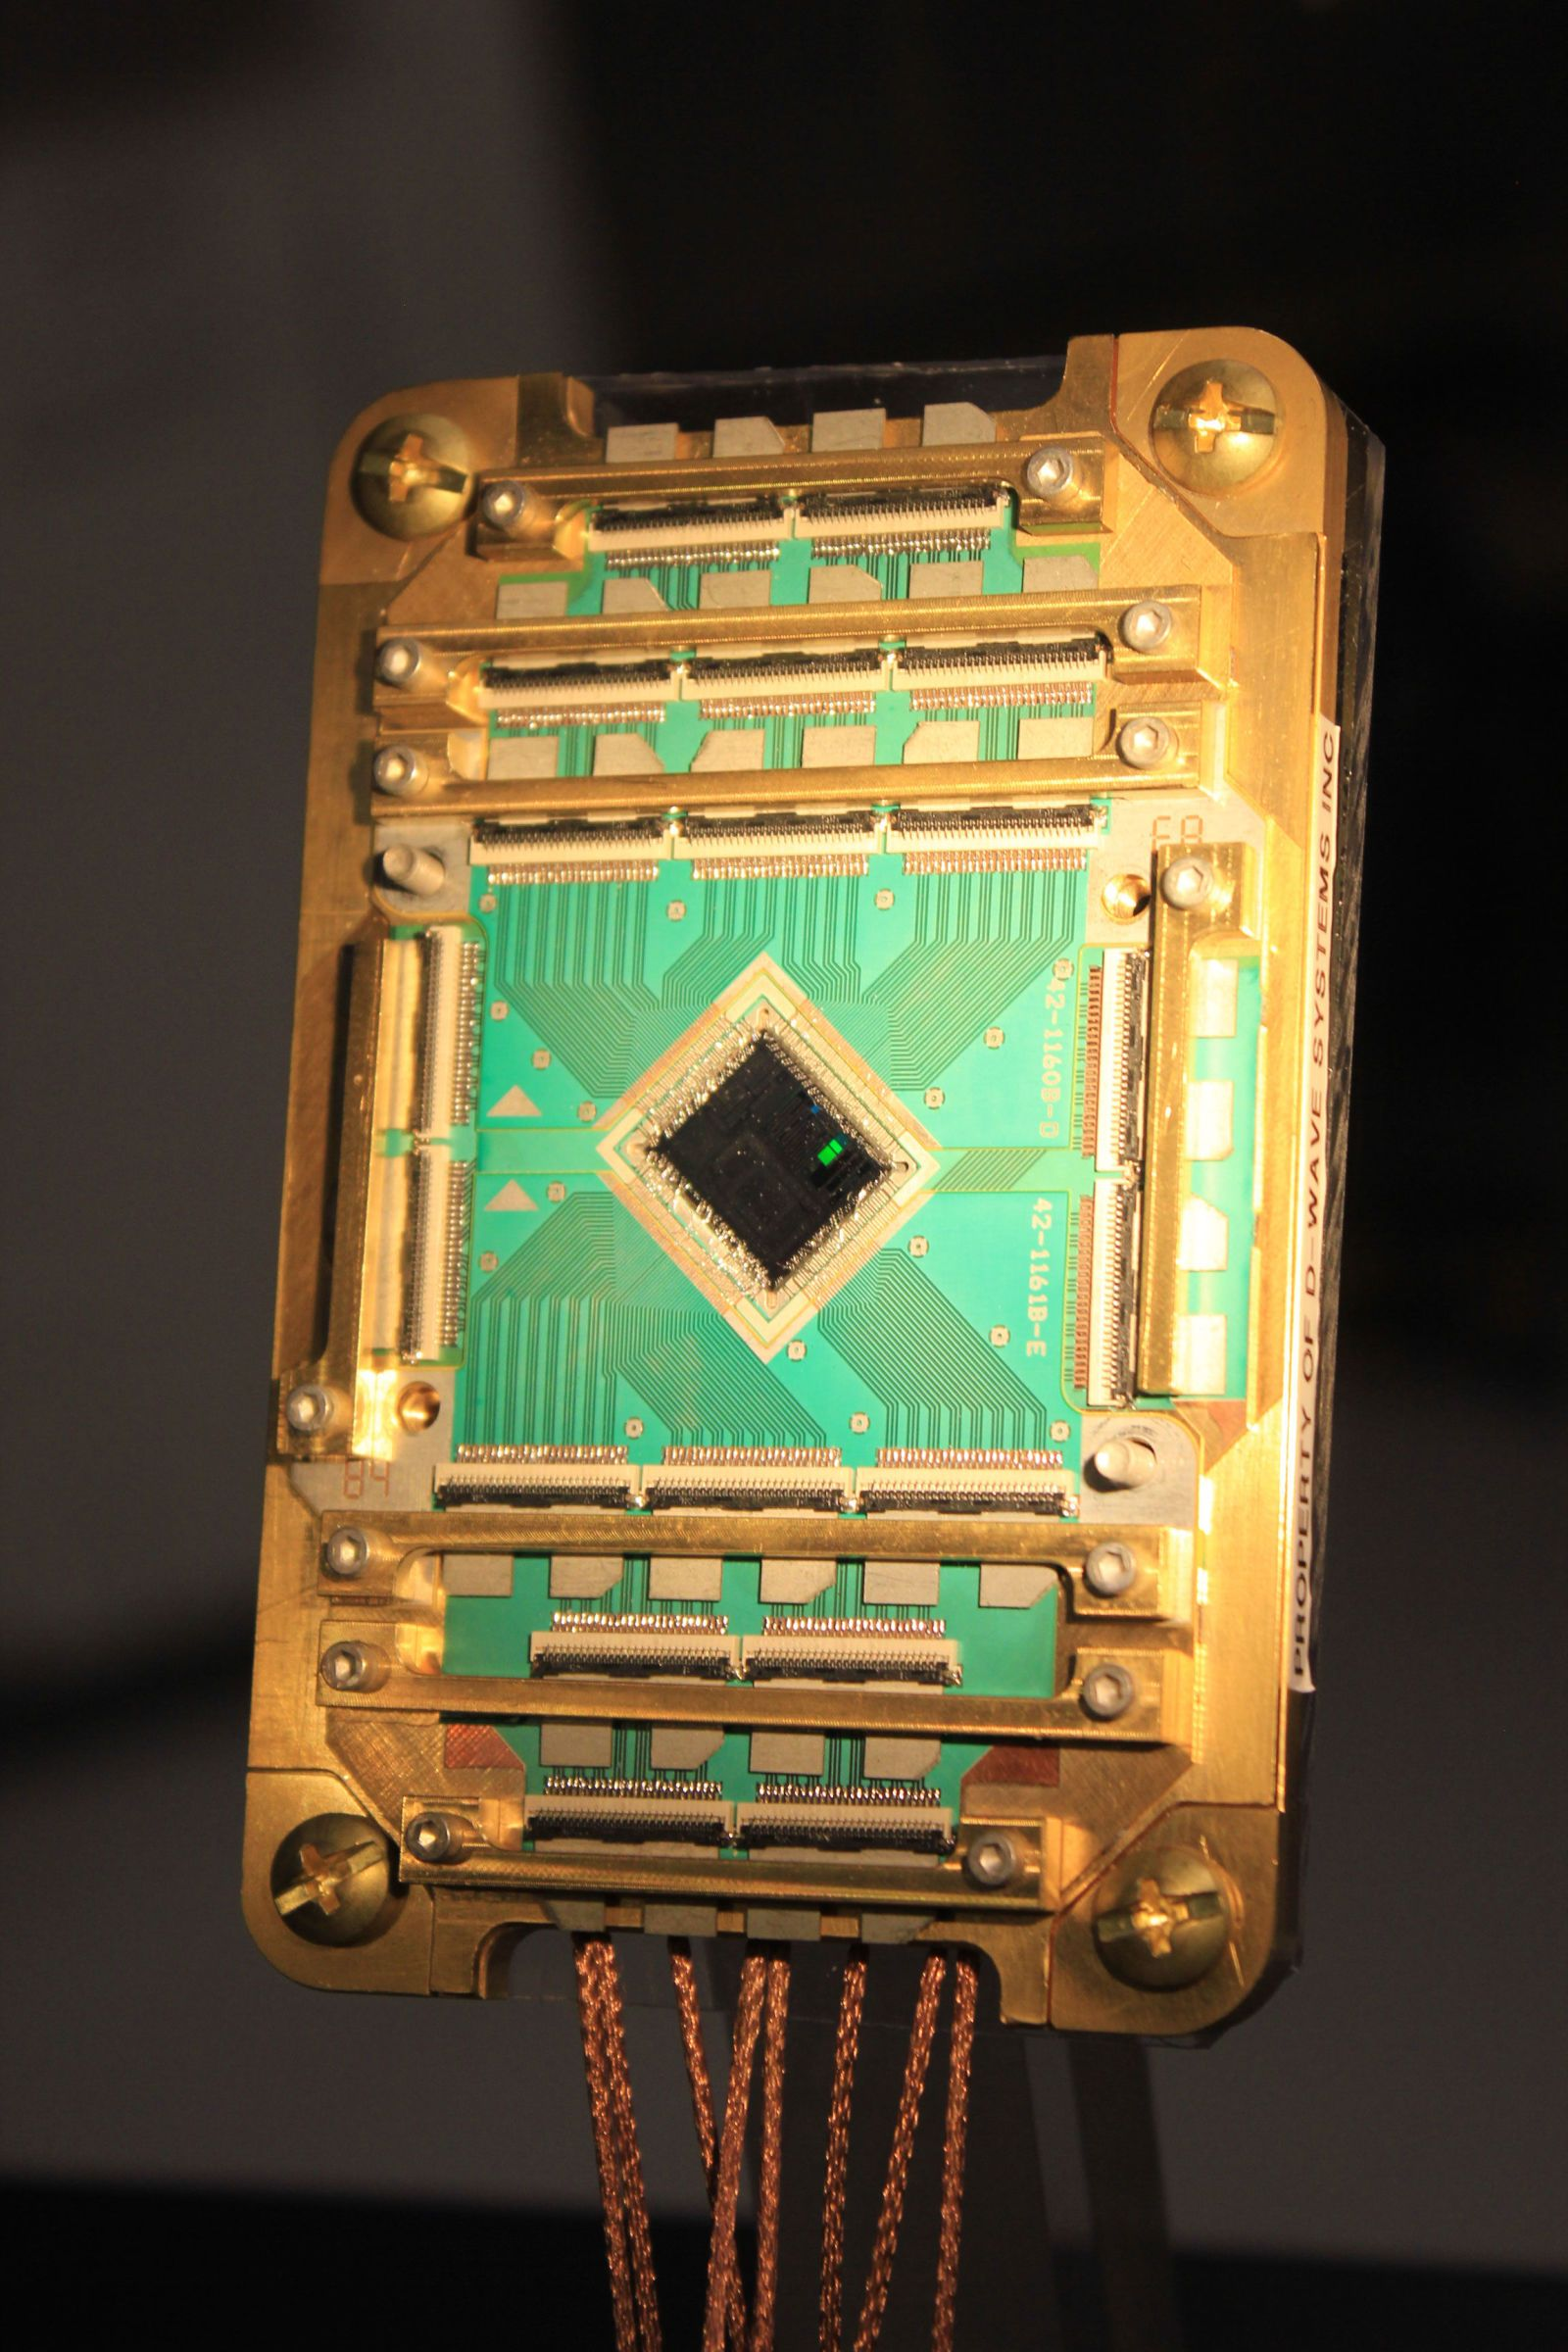 Google and NASA Say Their Quantum Computer Finally Works | D